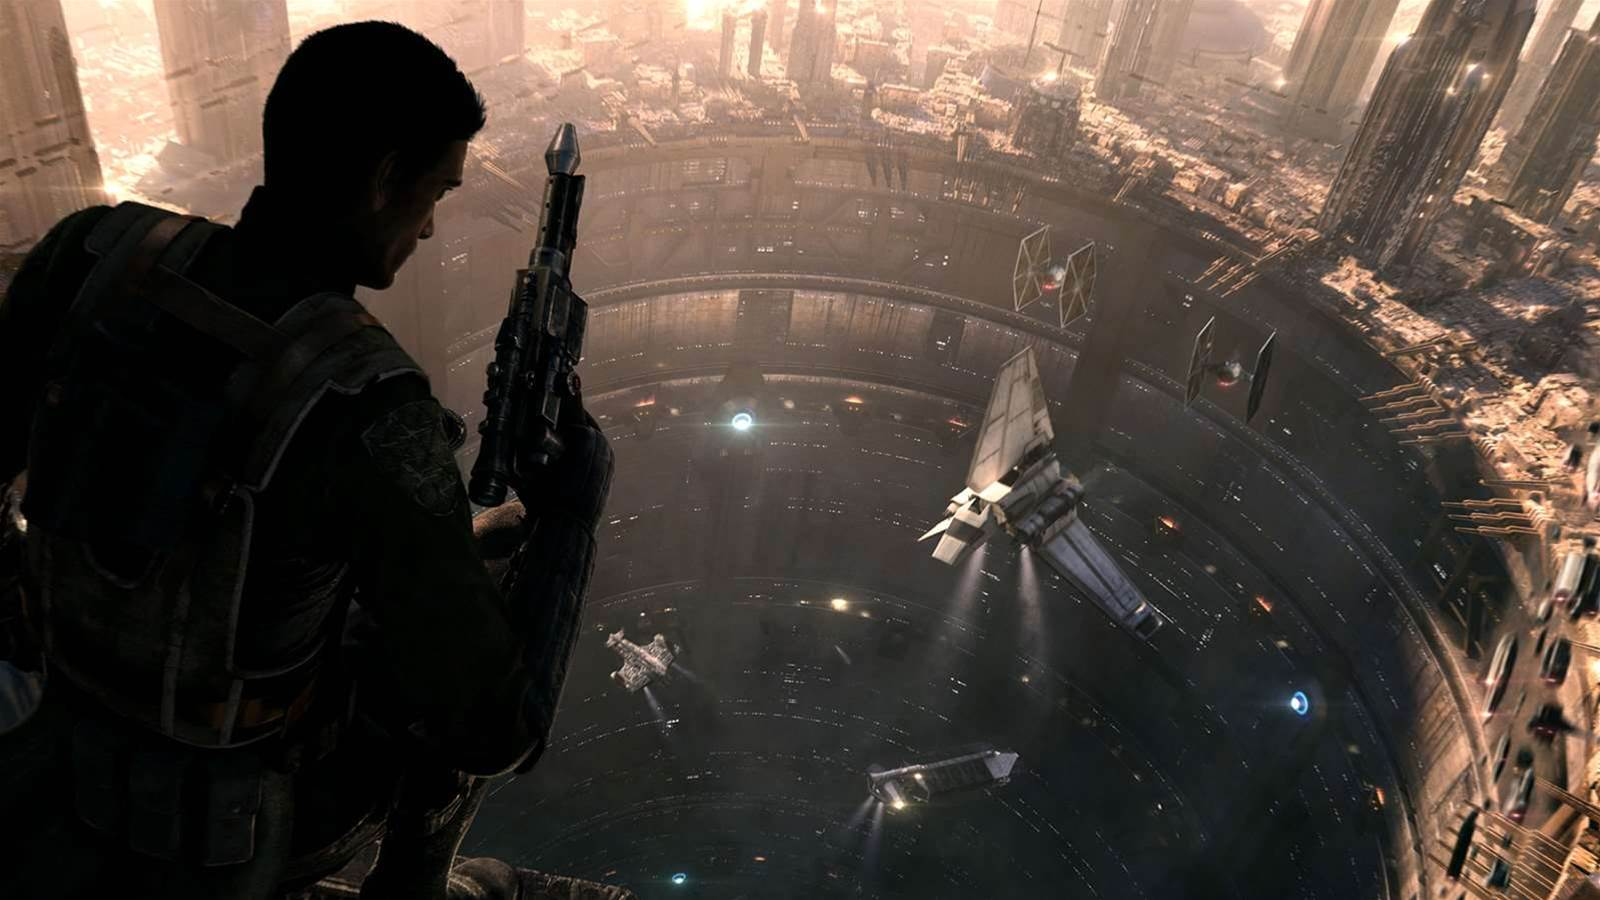 New Star Wars 1313 trailer revealed at Gamescom